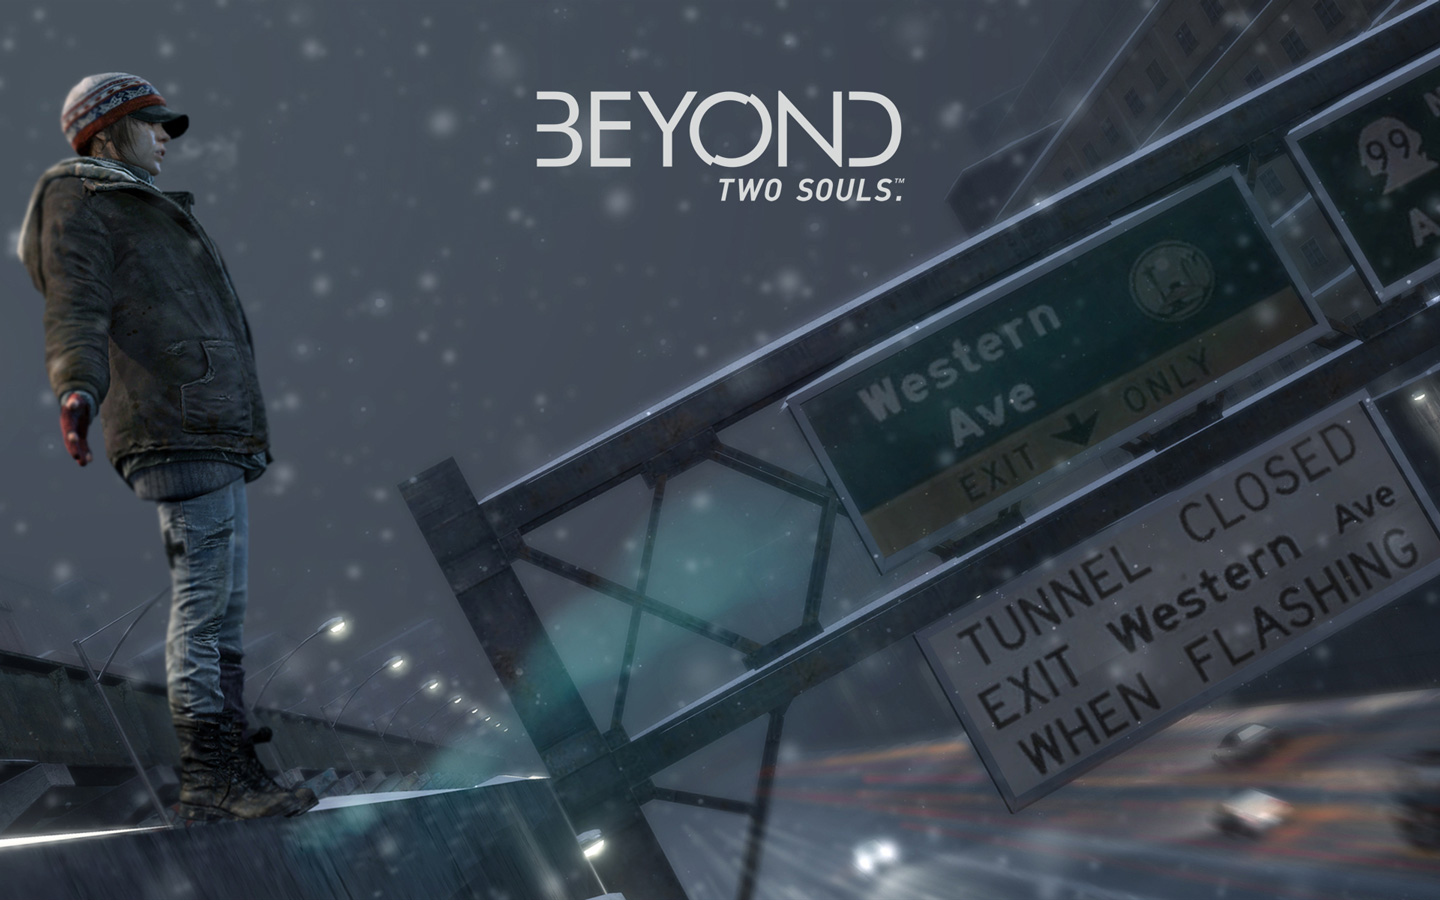 Free Beyond: Two Souls Wallpaper in 1440x900